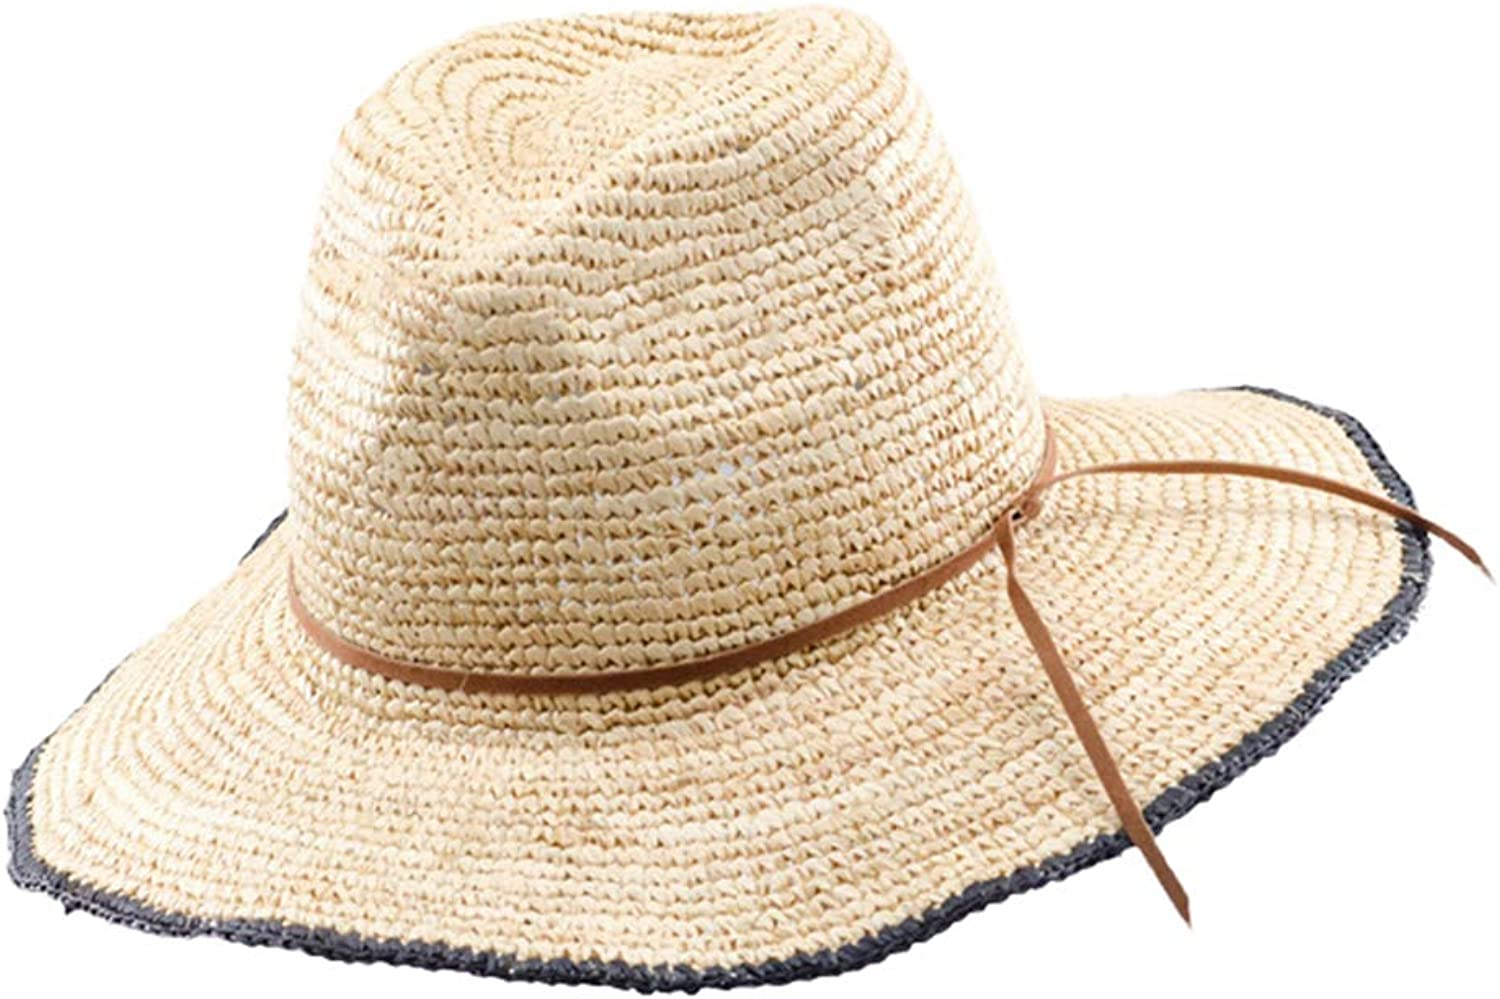 Summer Woven Natural Straw Hats Raffia Jazz Casual Large Brim Bow Travel Beach Sun Hat